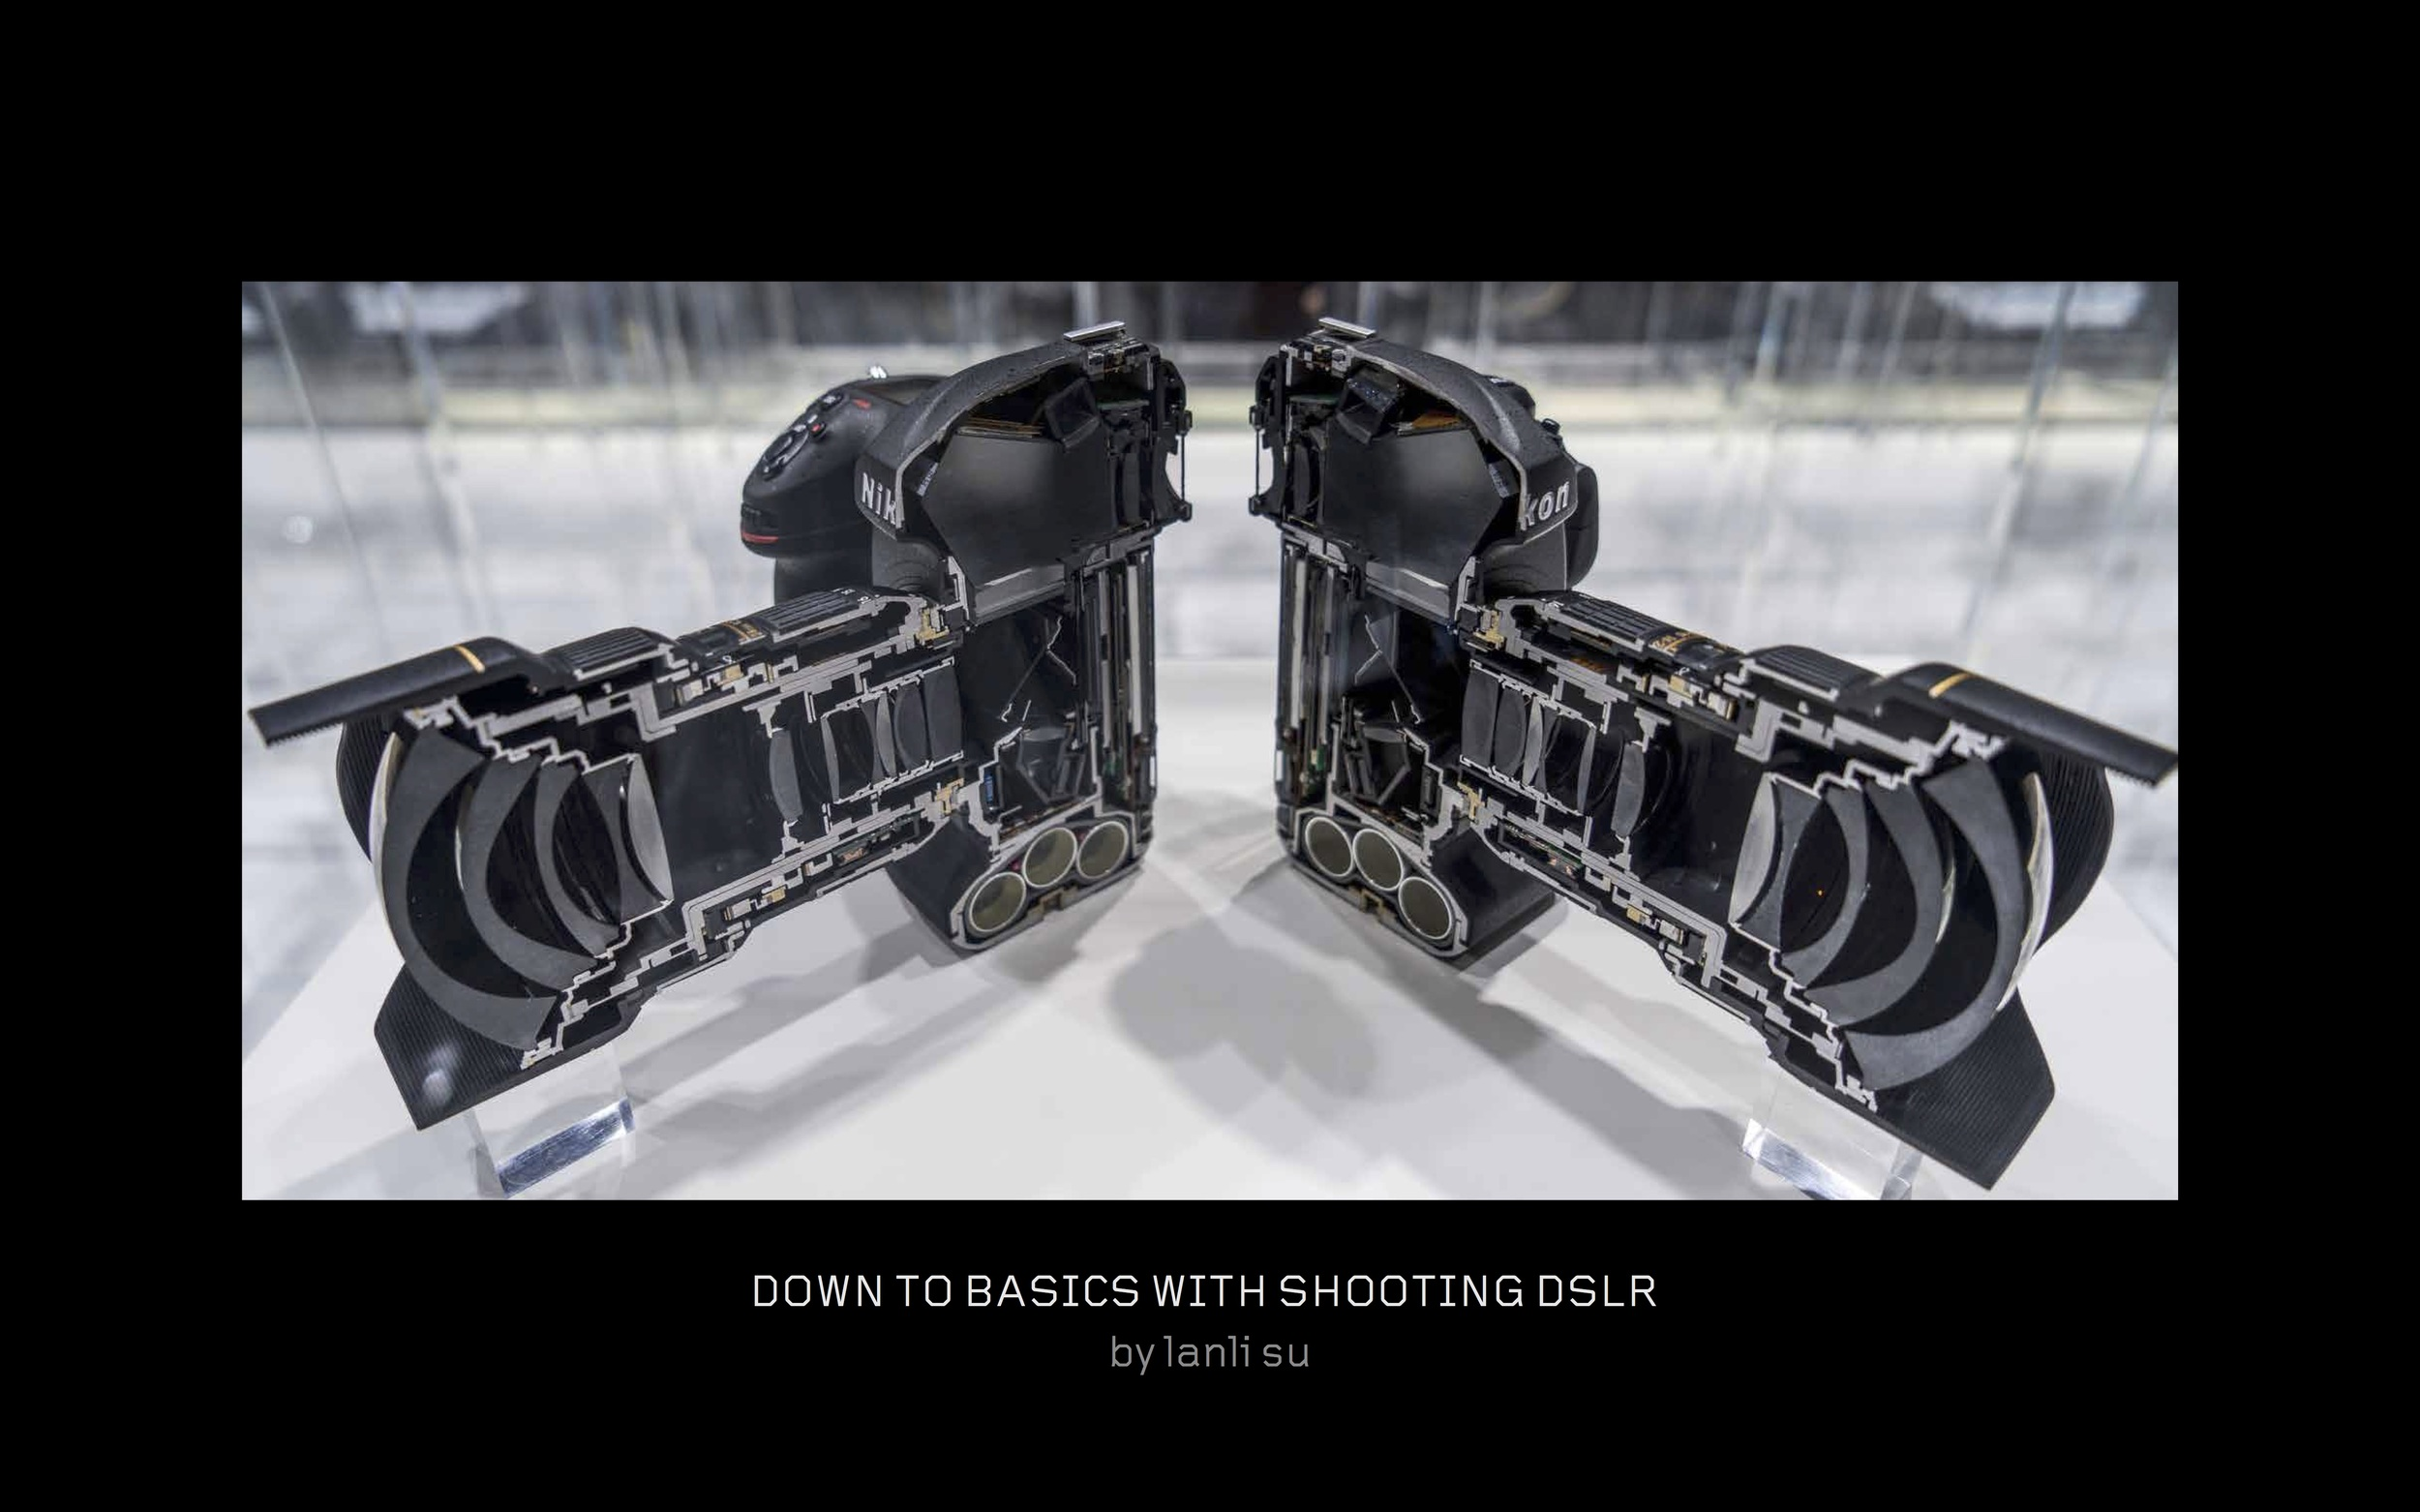 Down to Basics with Shooting DSLR - PPT.jpg